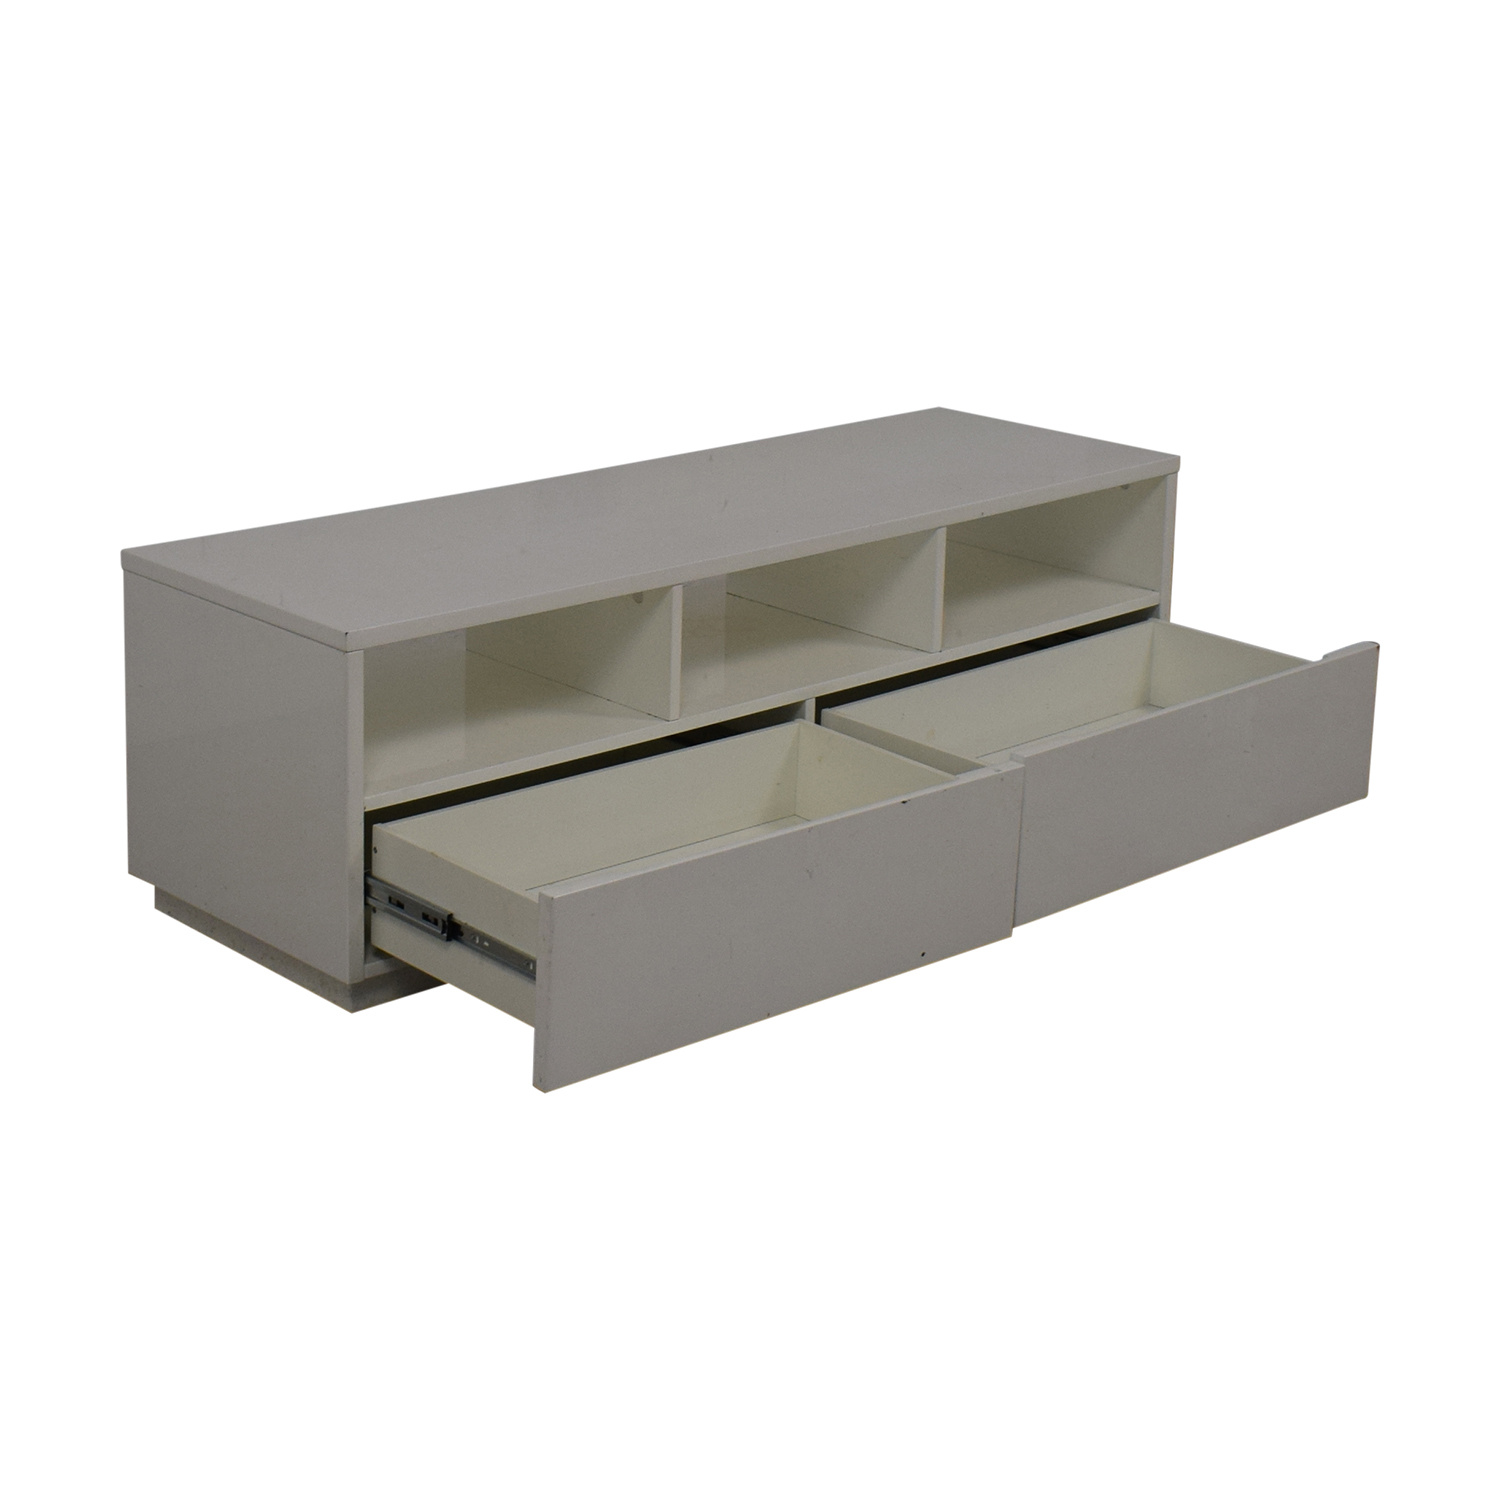 Crate & Barrel CB2 Chill White Media Console used